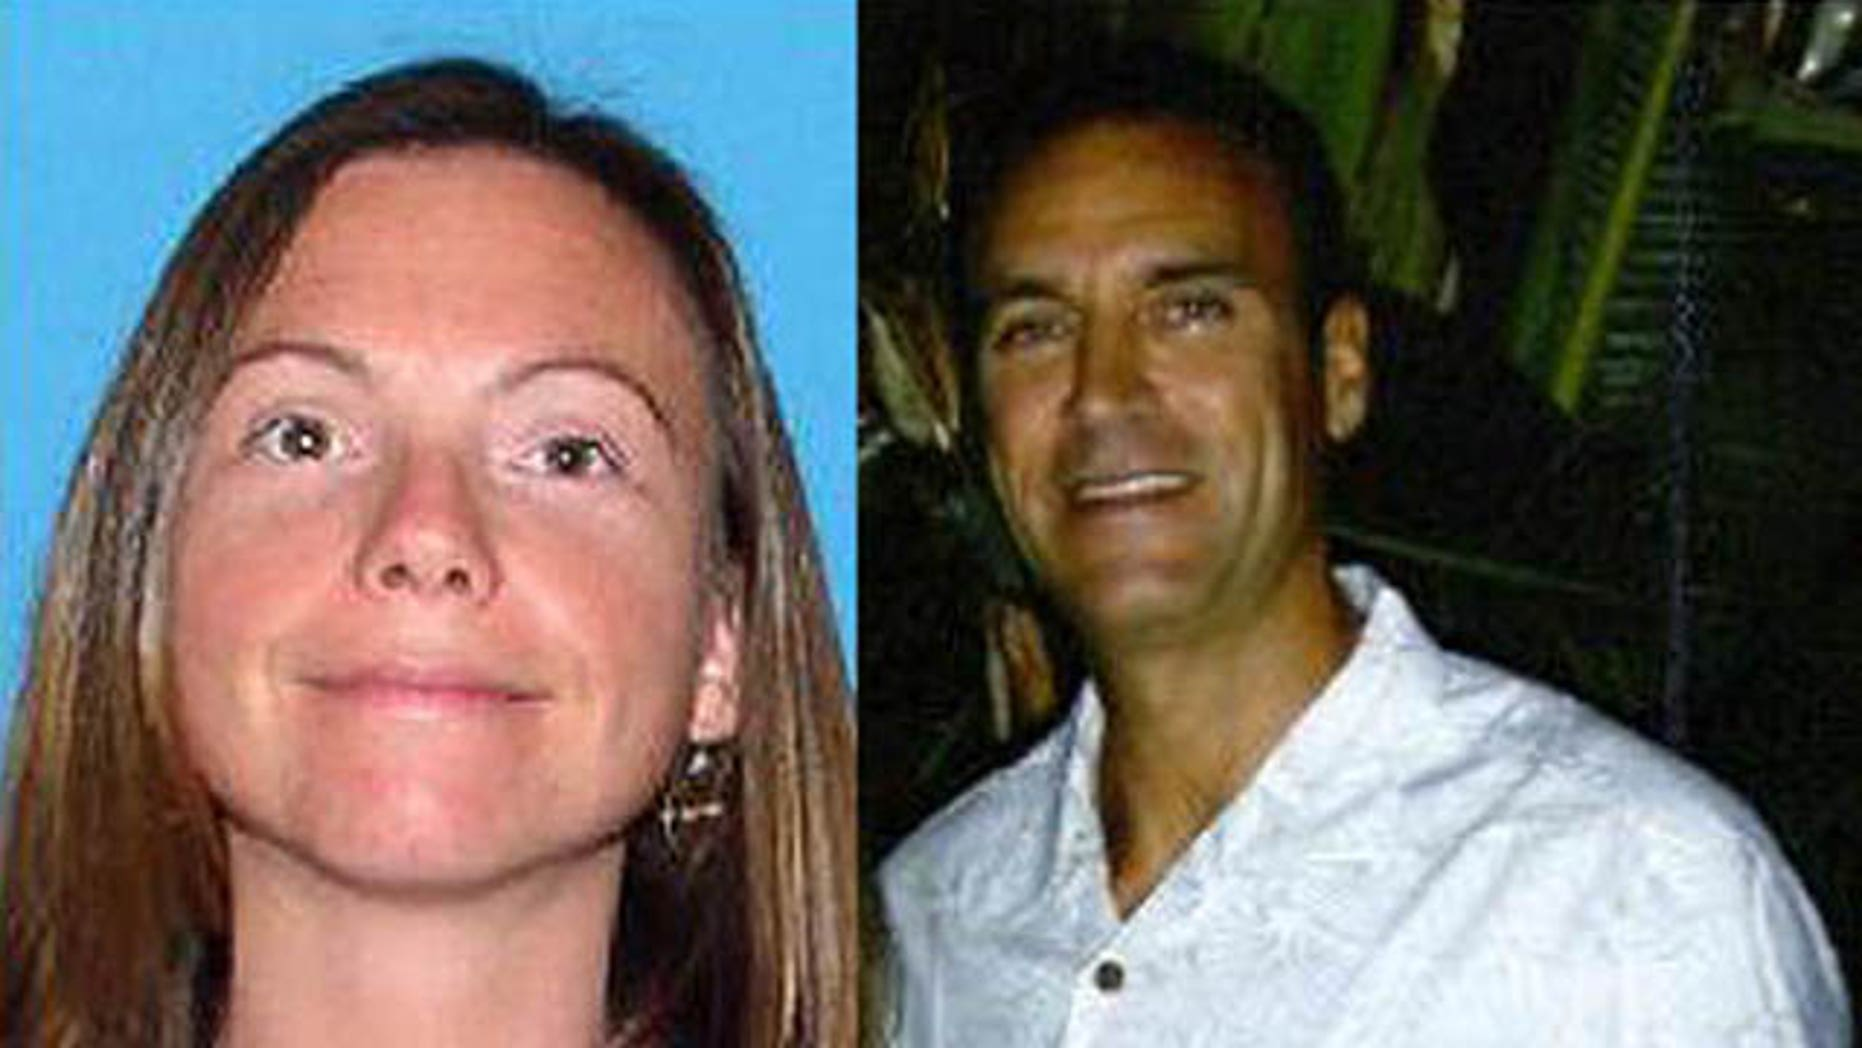 Police recruit Kelly Rothwell, left, was last seen in Pinellas County, Fla., March 12. Police have named her live-in boyfriend, David Perry, right, a suspect in her disappearance.